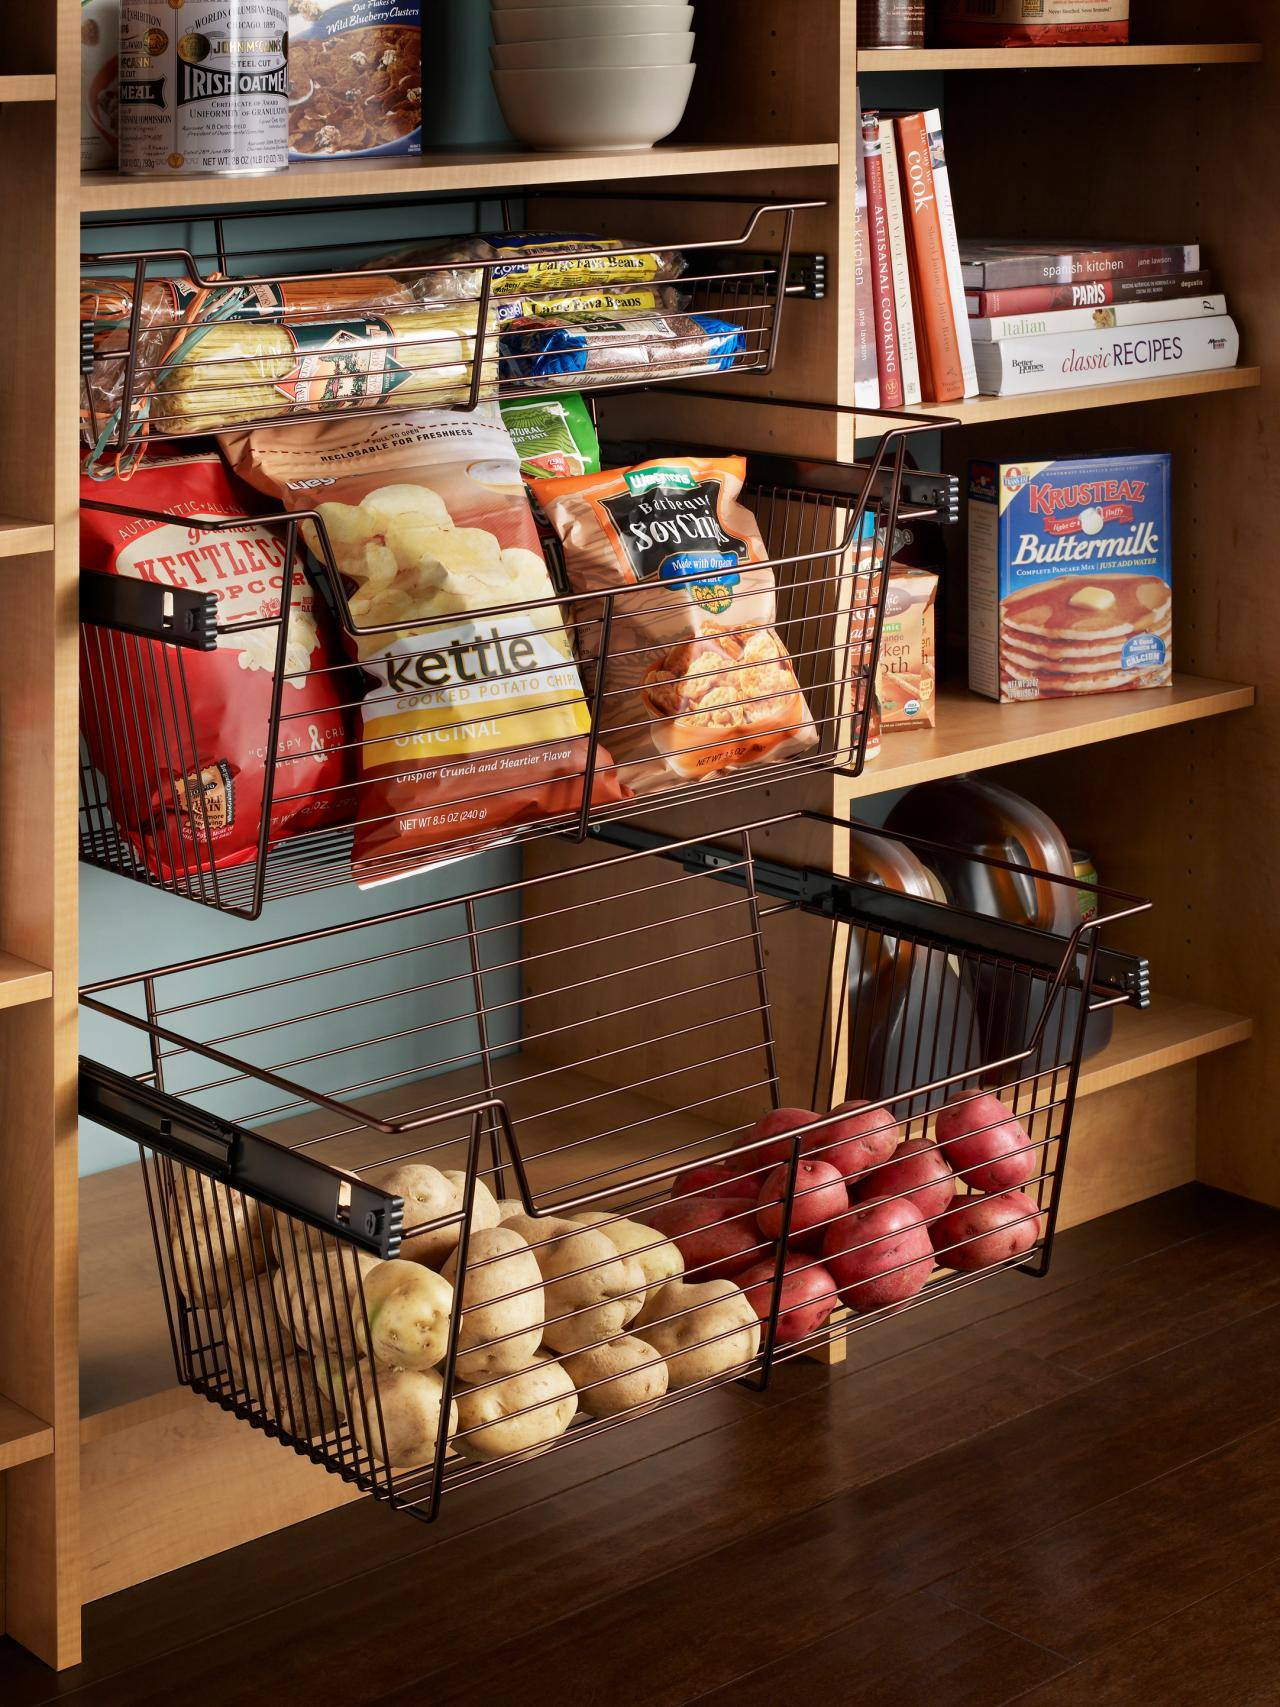 cool kitchen hack -- bulk products that have a longer life time, such as potatoes and onions. If this is too much country for your taste use the crates as pull-out inside your cabinetry.